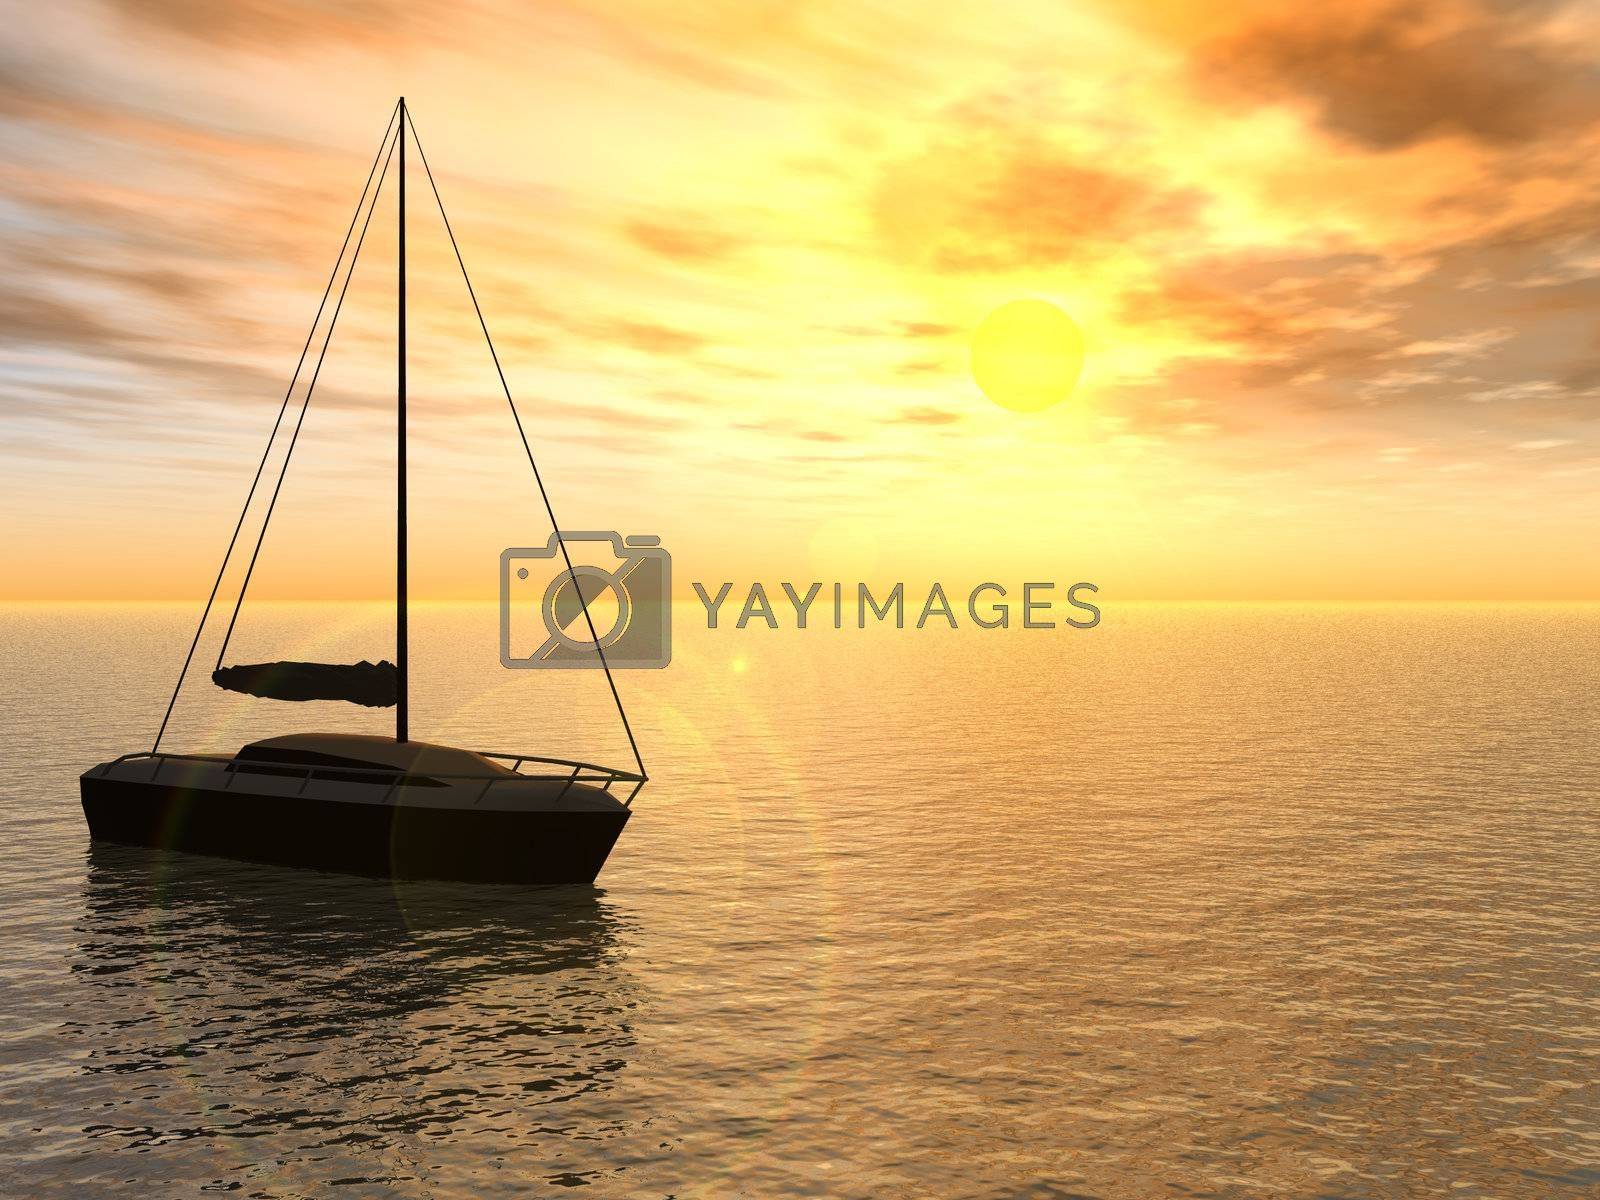 Royalty free image of yacht by drizzd